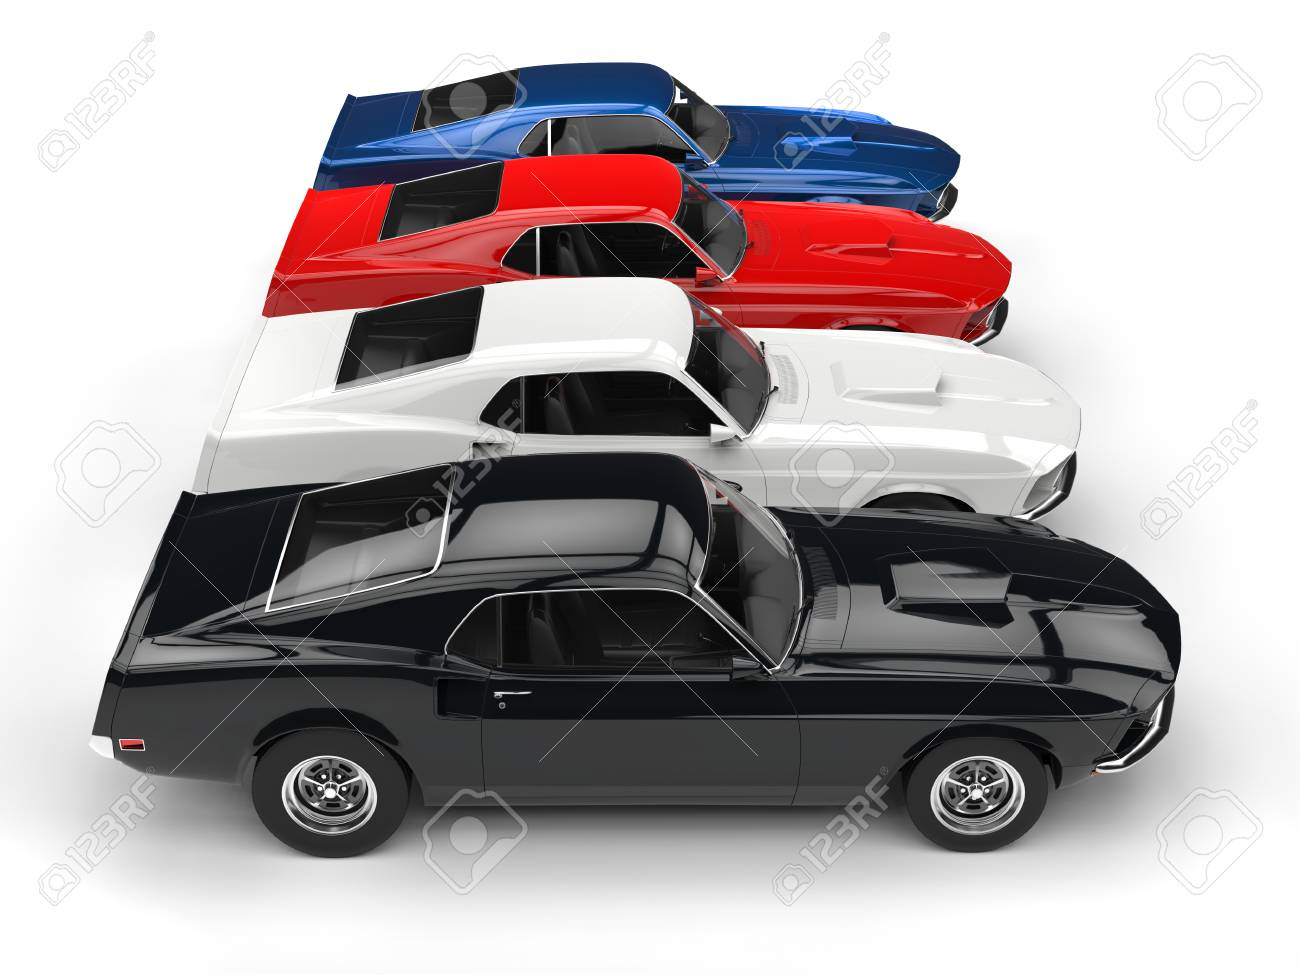 Colorful Classic Muscle Cars - Top View Stock Photo, Picture And ...